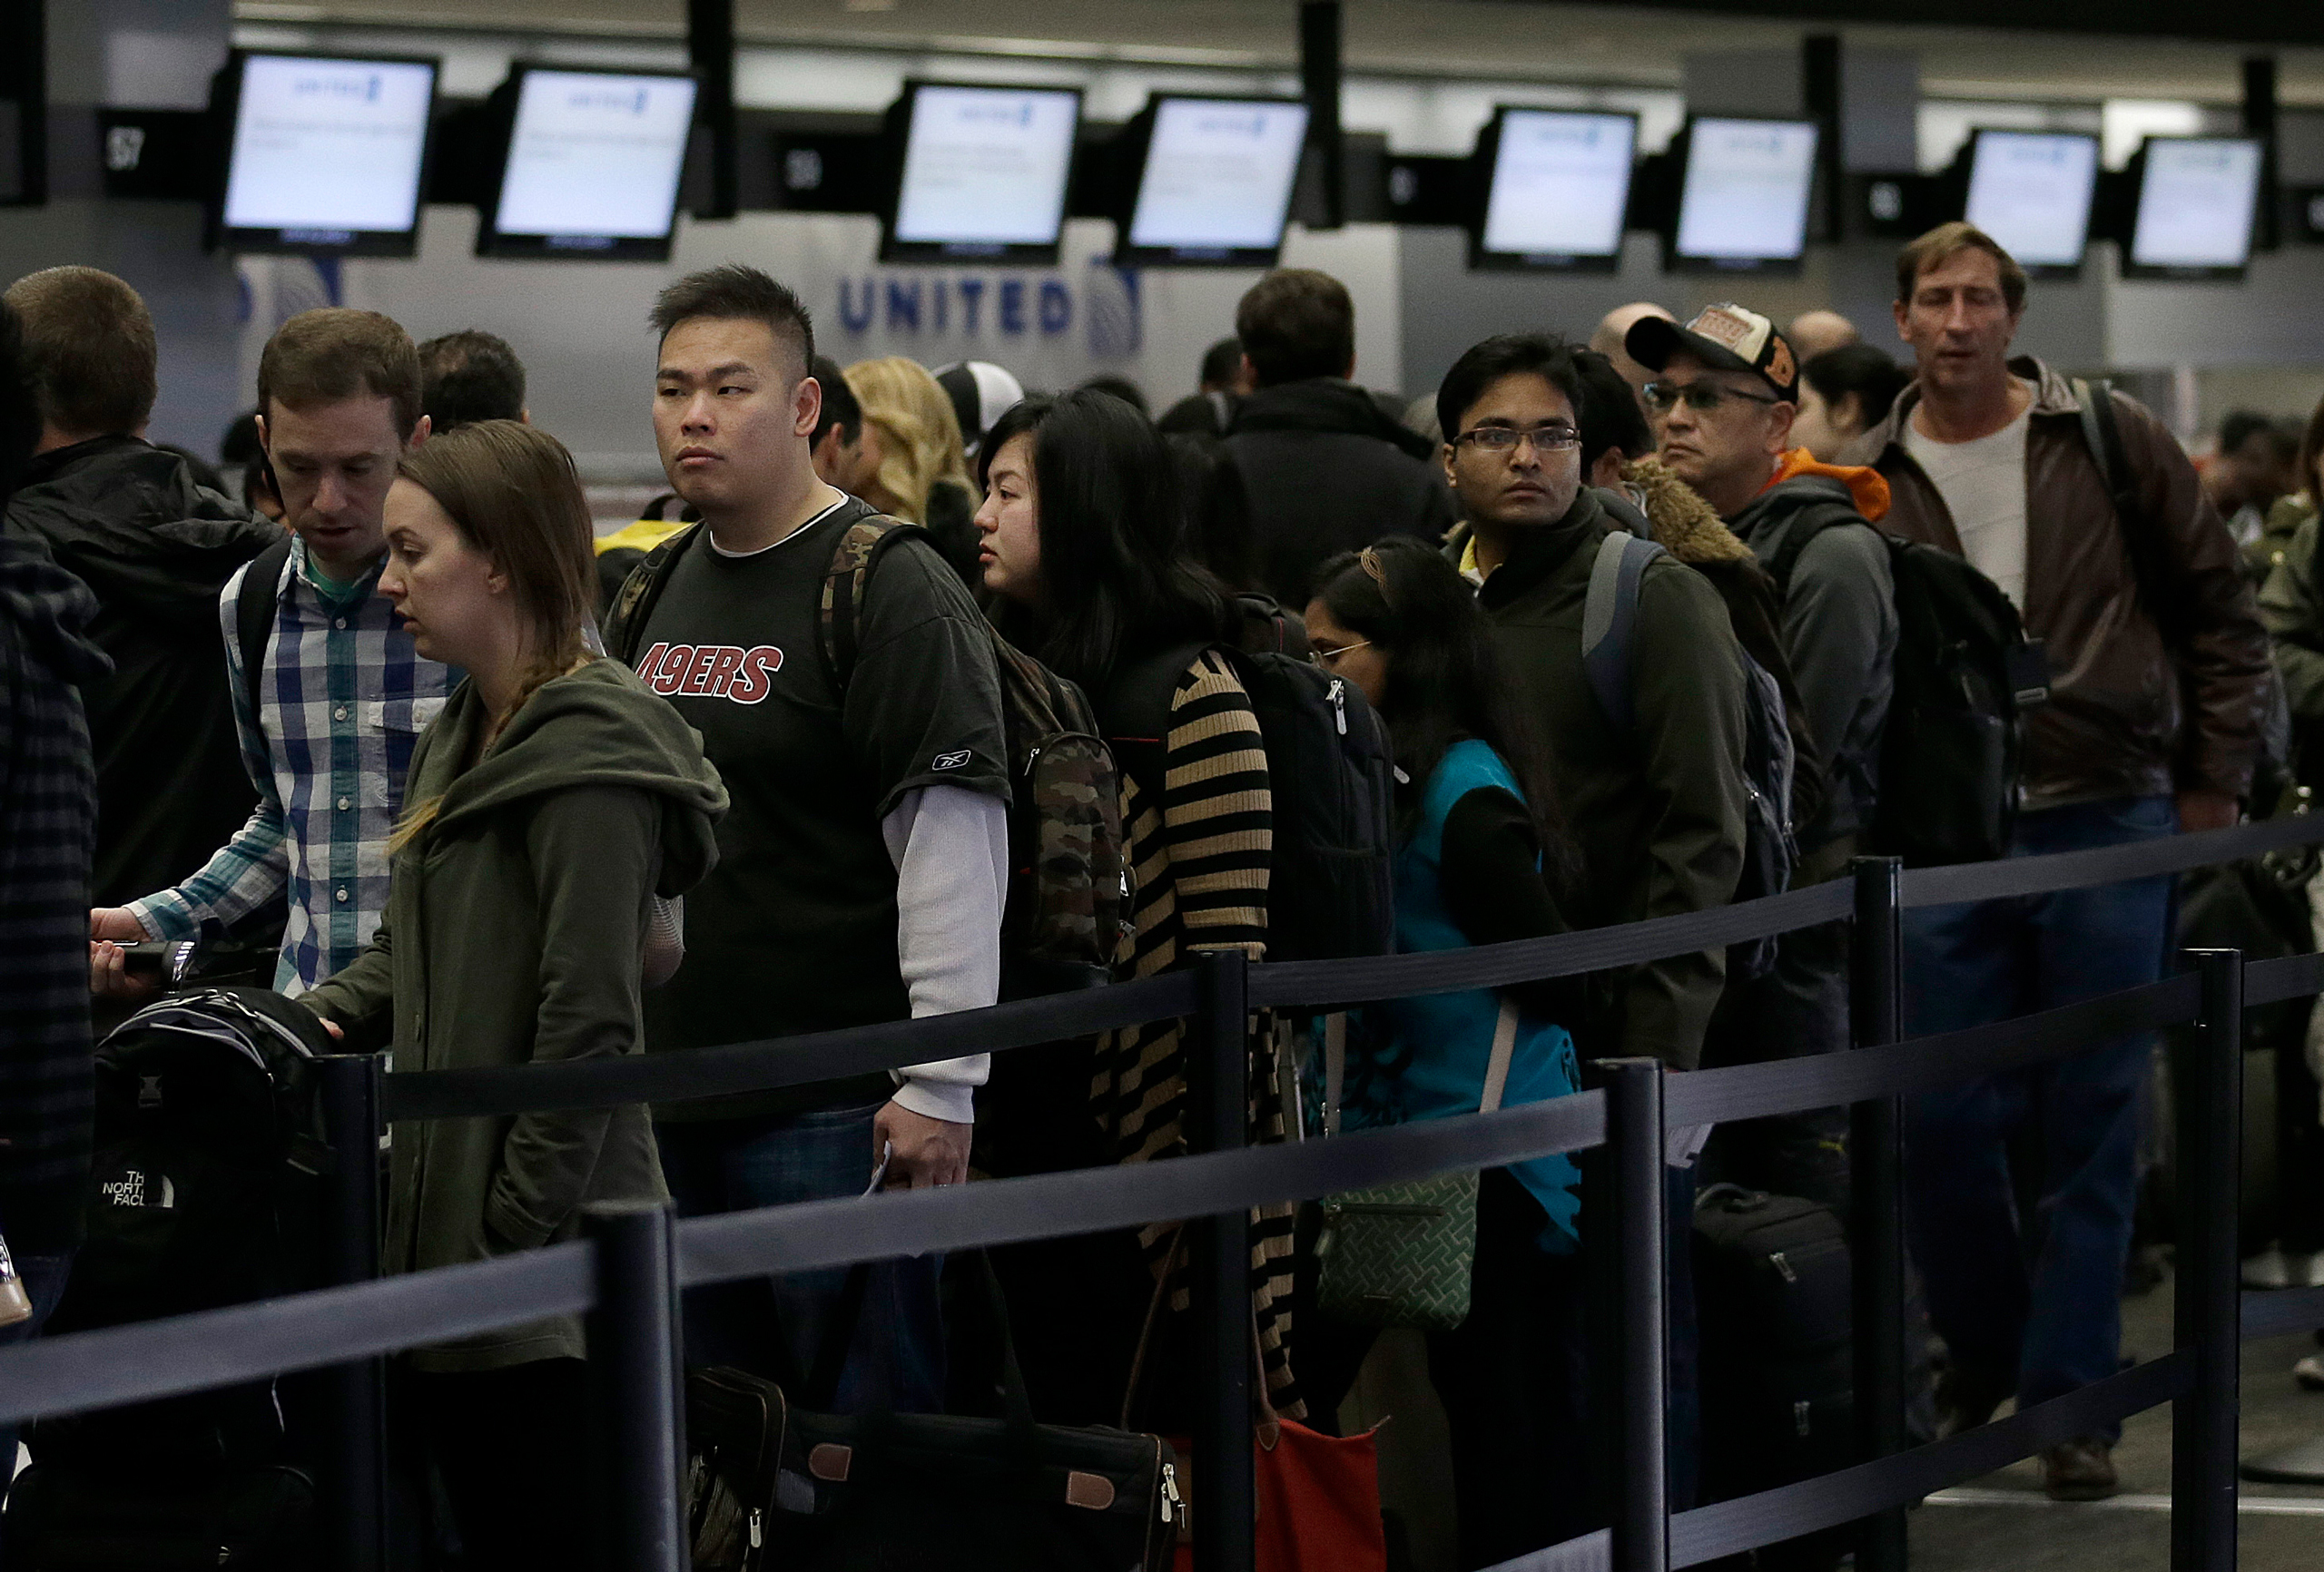 A line of passengers wait in line to enter the security checkpoint in the domestic terminal at San Francisco International Airport in San Francisco, Thursday, Nov. 28, 2013. More than 43 million people are to travel over the long holiday weekend, according to AAA. (AP Photo/Jeff Chiu)